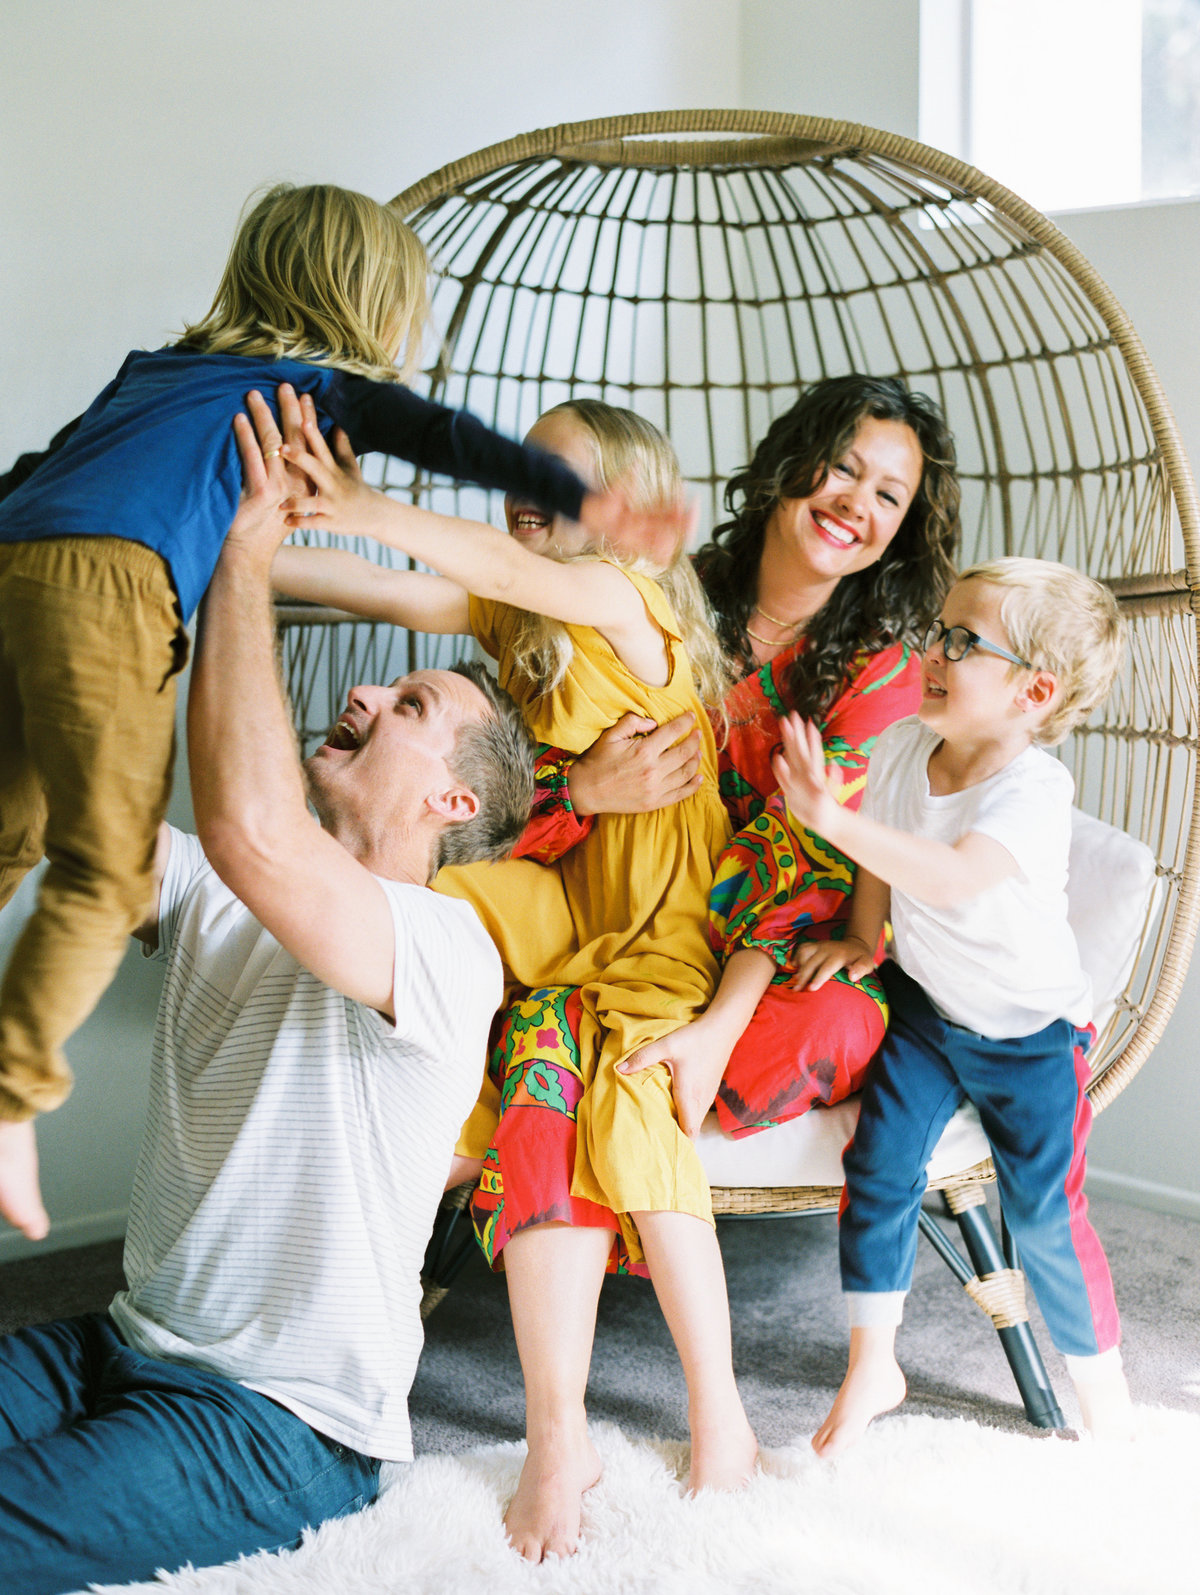 charleston-lifestyle-family-portrait-photographer-philip-casey-046